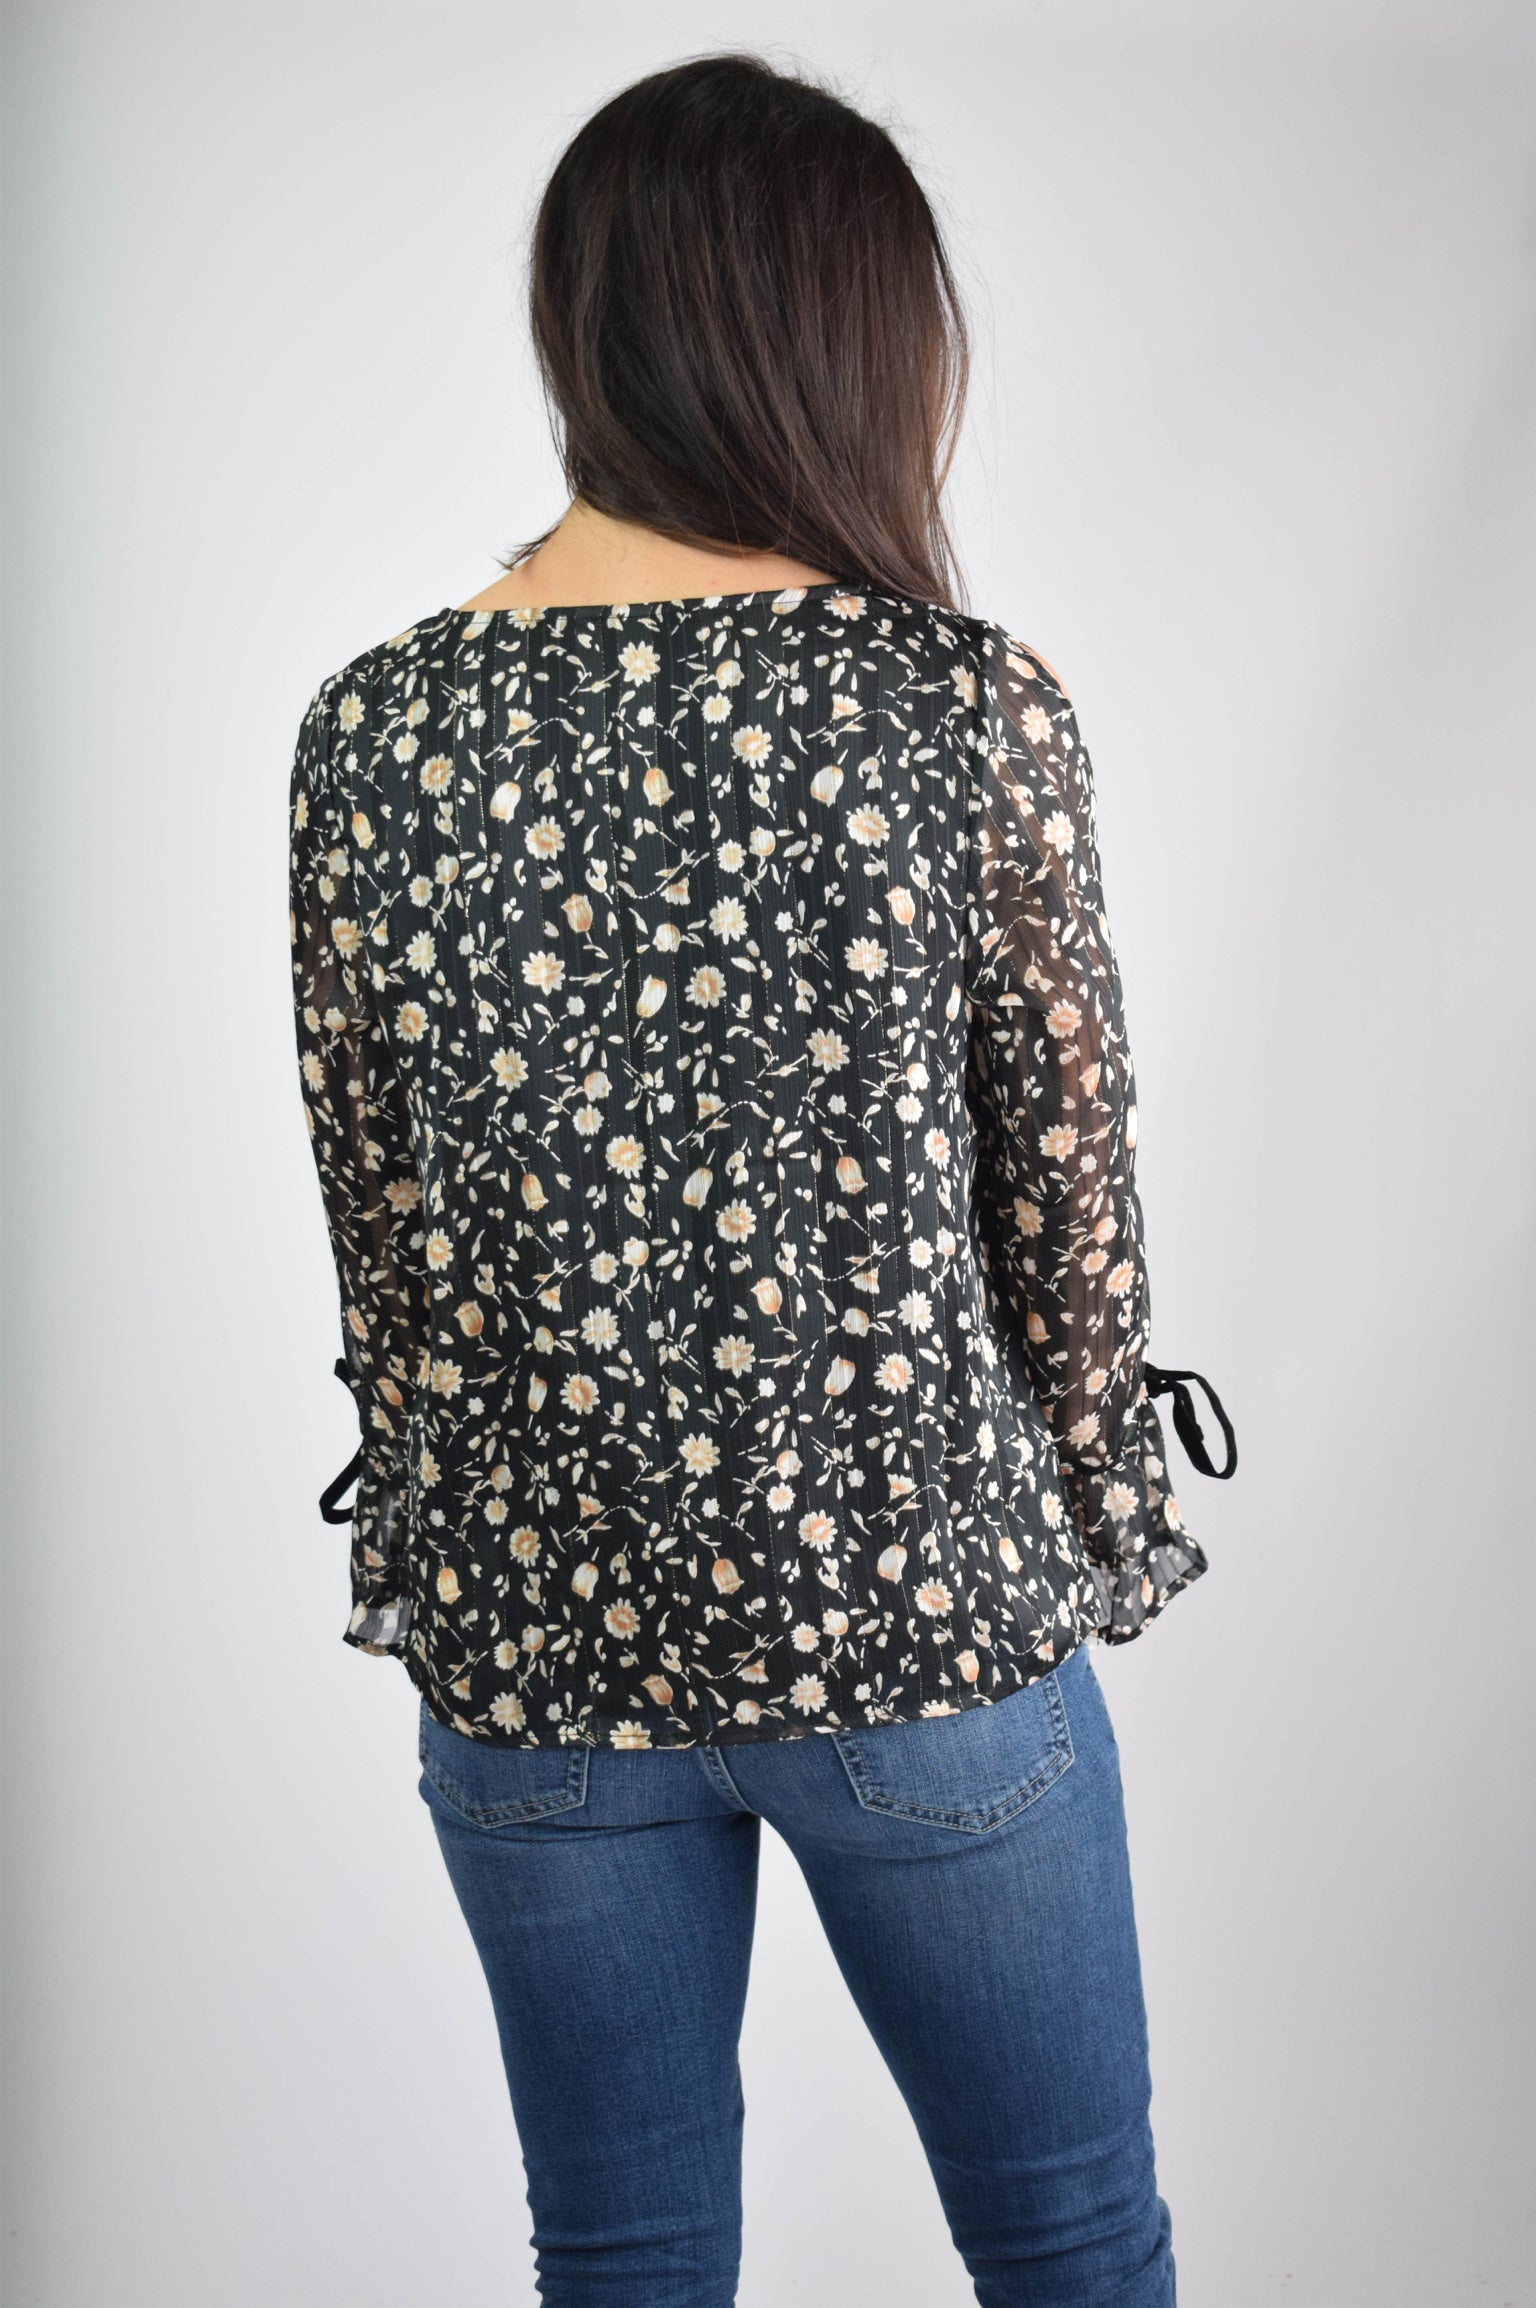 Hints of Sparkle Black Floral Open Sleeve Blouse